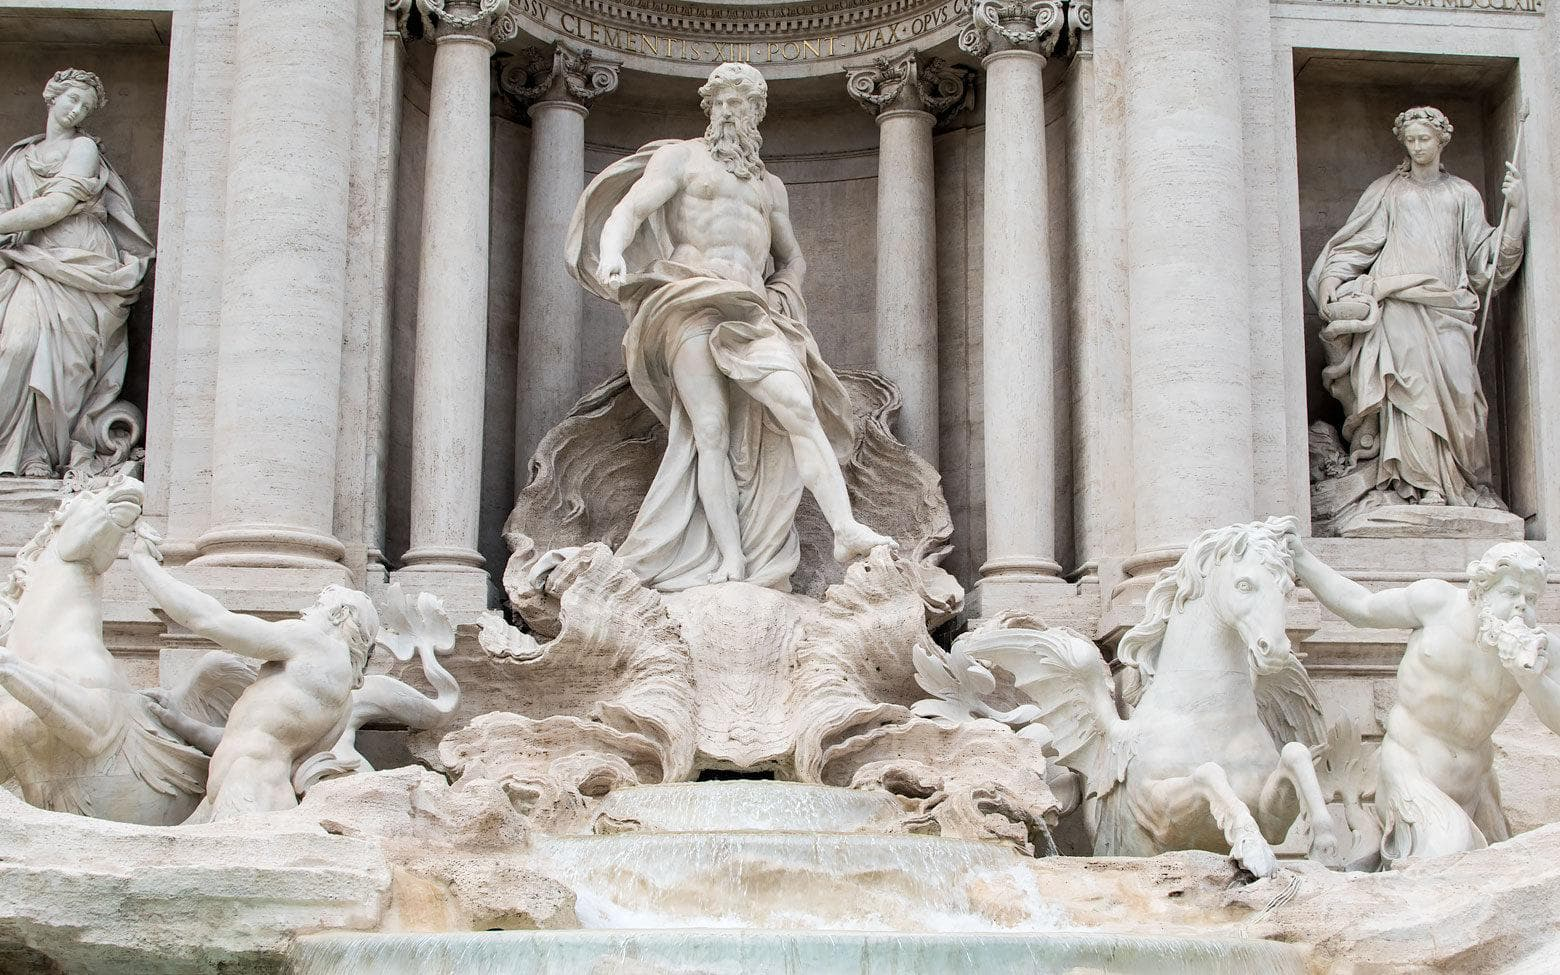 3 days in Rome itinerary day 1 - The Trevi Fountain